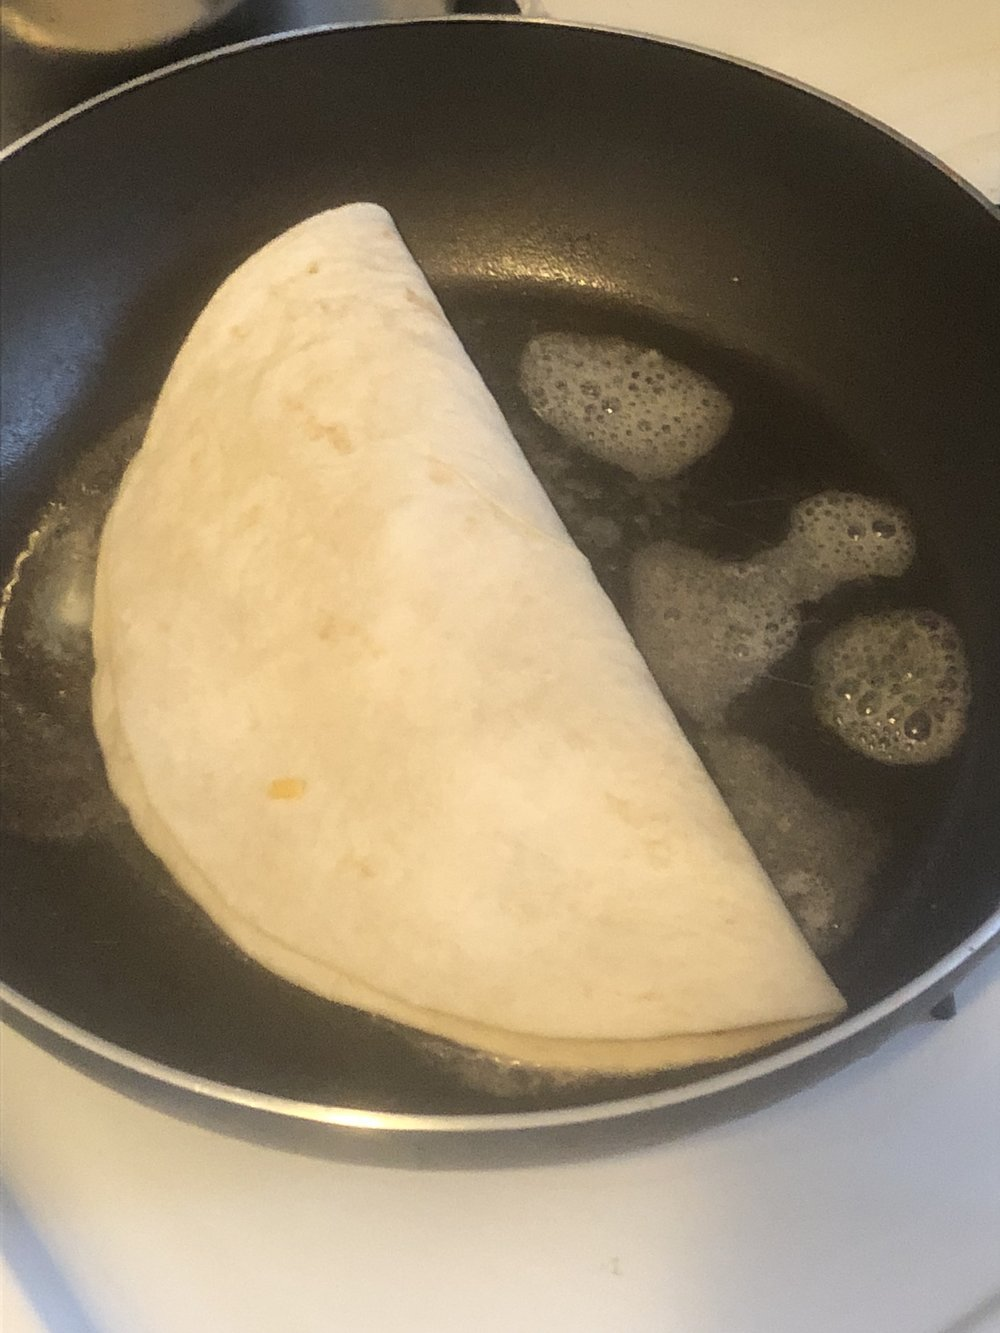 Put your butter in your medium skillet, and cook until the pan is hot. Fold the side of quesadilla over to cover the insides and place in the pan. Allow for the quesadilla to cook and for the cheese to melt, flipping the quesadilla on both side to allow for even cooking.